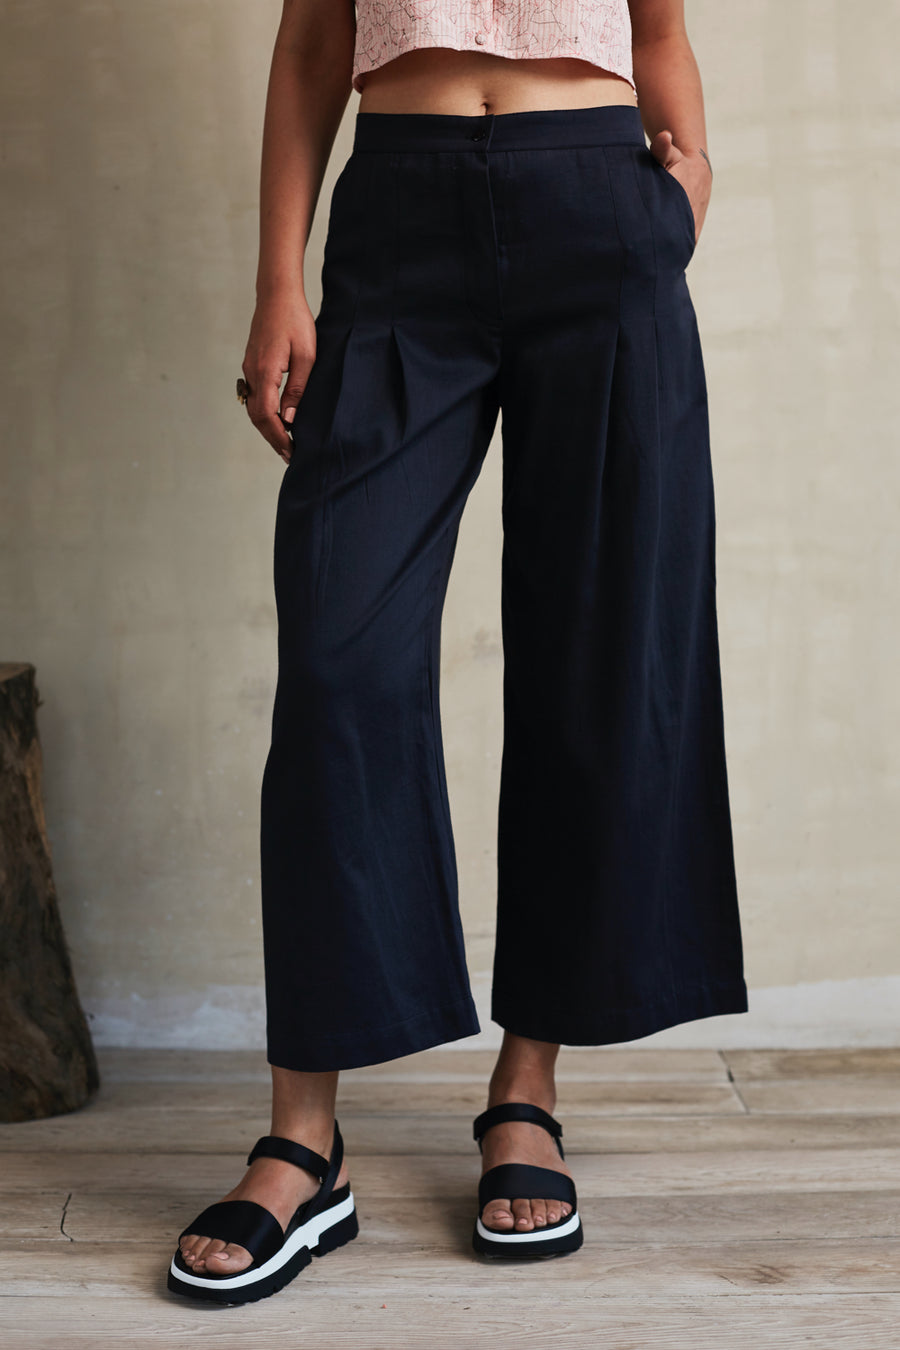 Plain and Simple Pleated Pants - onlyethikal